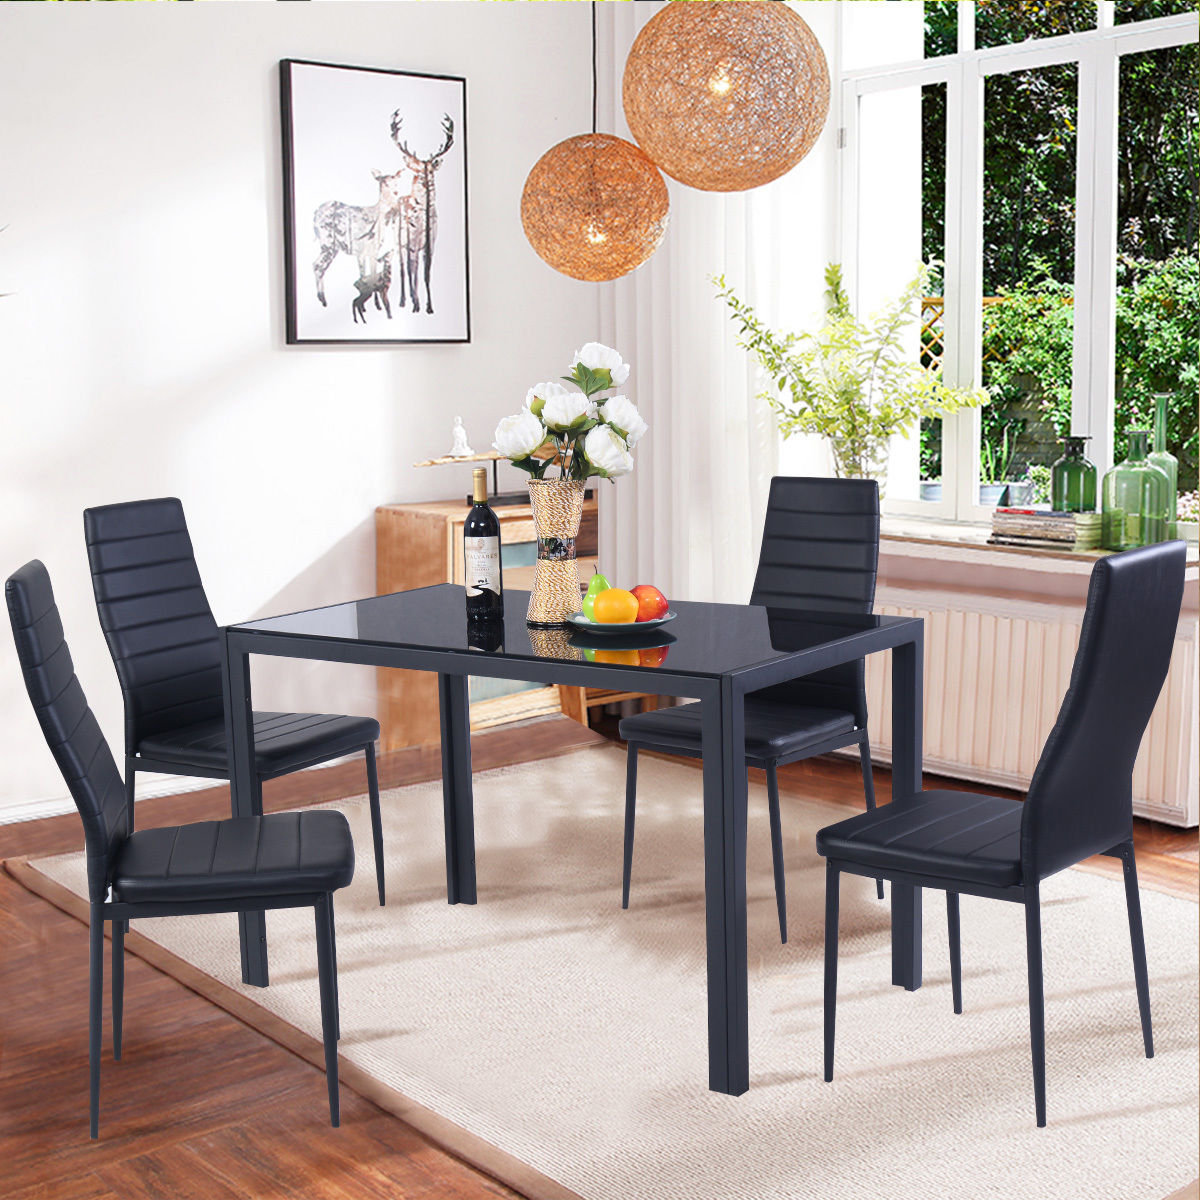 Costway 5 Piece Kitchen Dining Room Set Glass Metal Table and 4 Chairs Breakfast Furniture by Costway